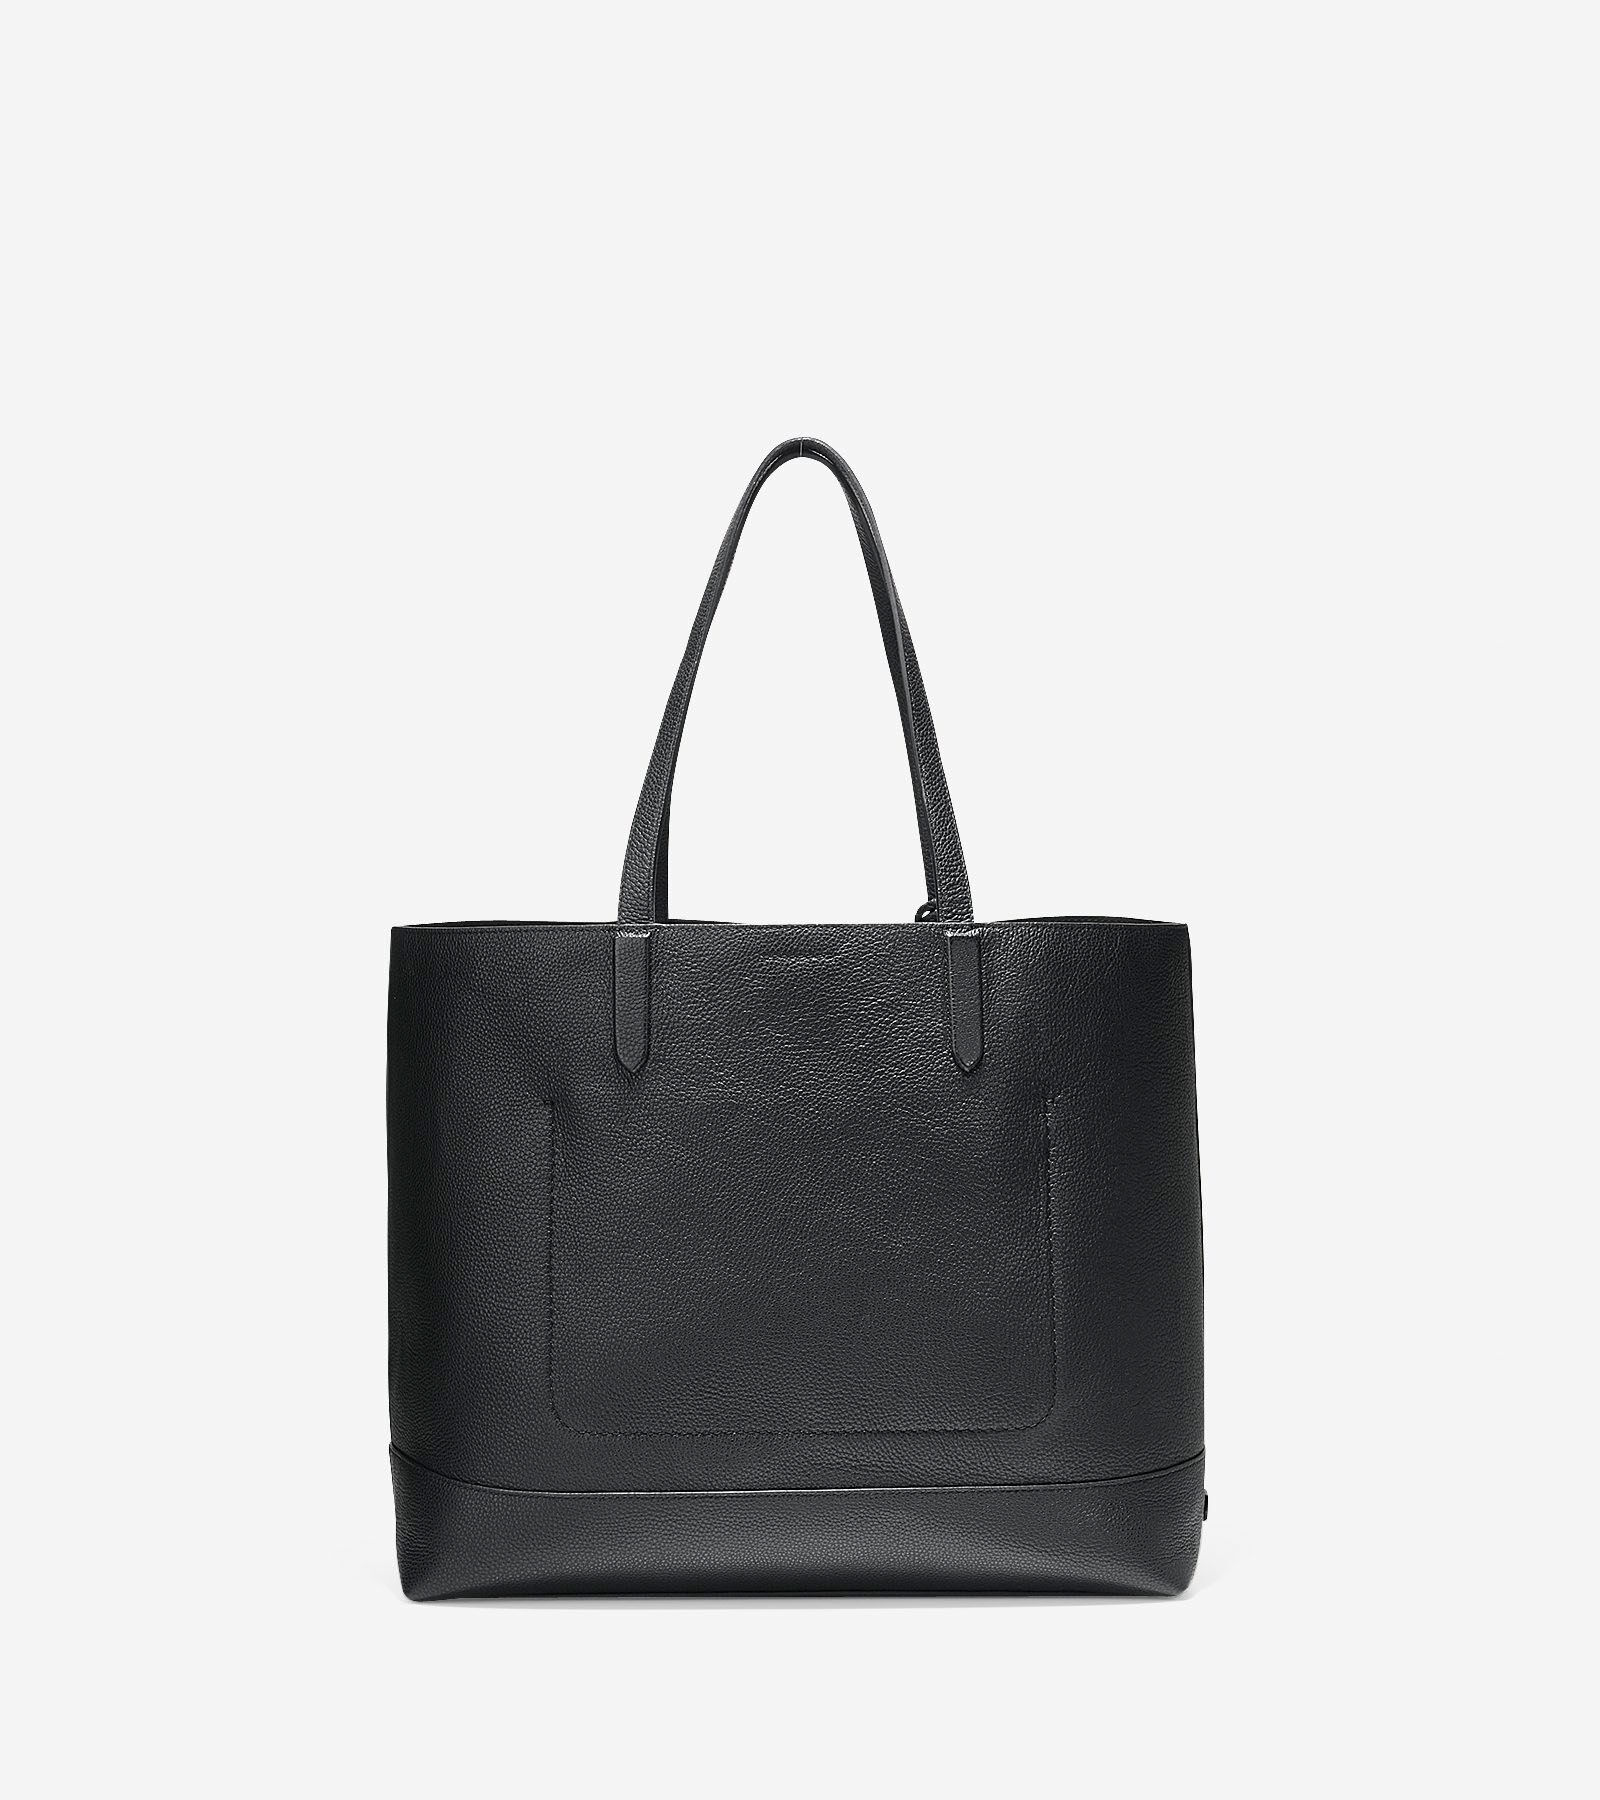 Tote Bag - Leather and Feather Tote by VIDA VIDA W7rmuce6p